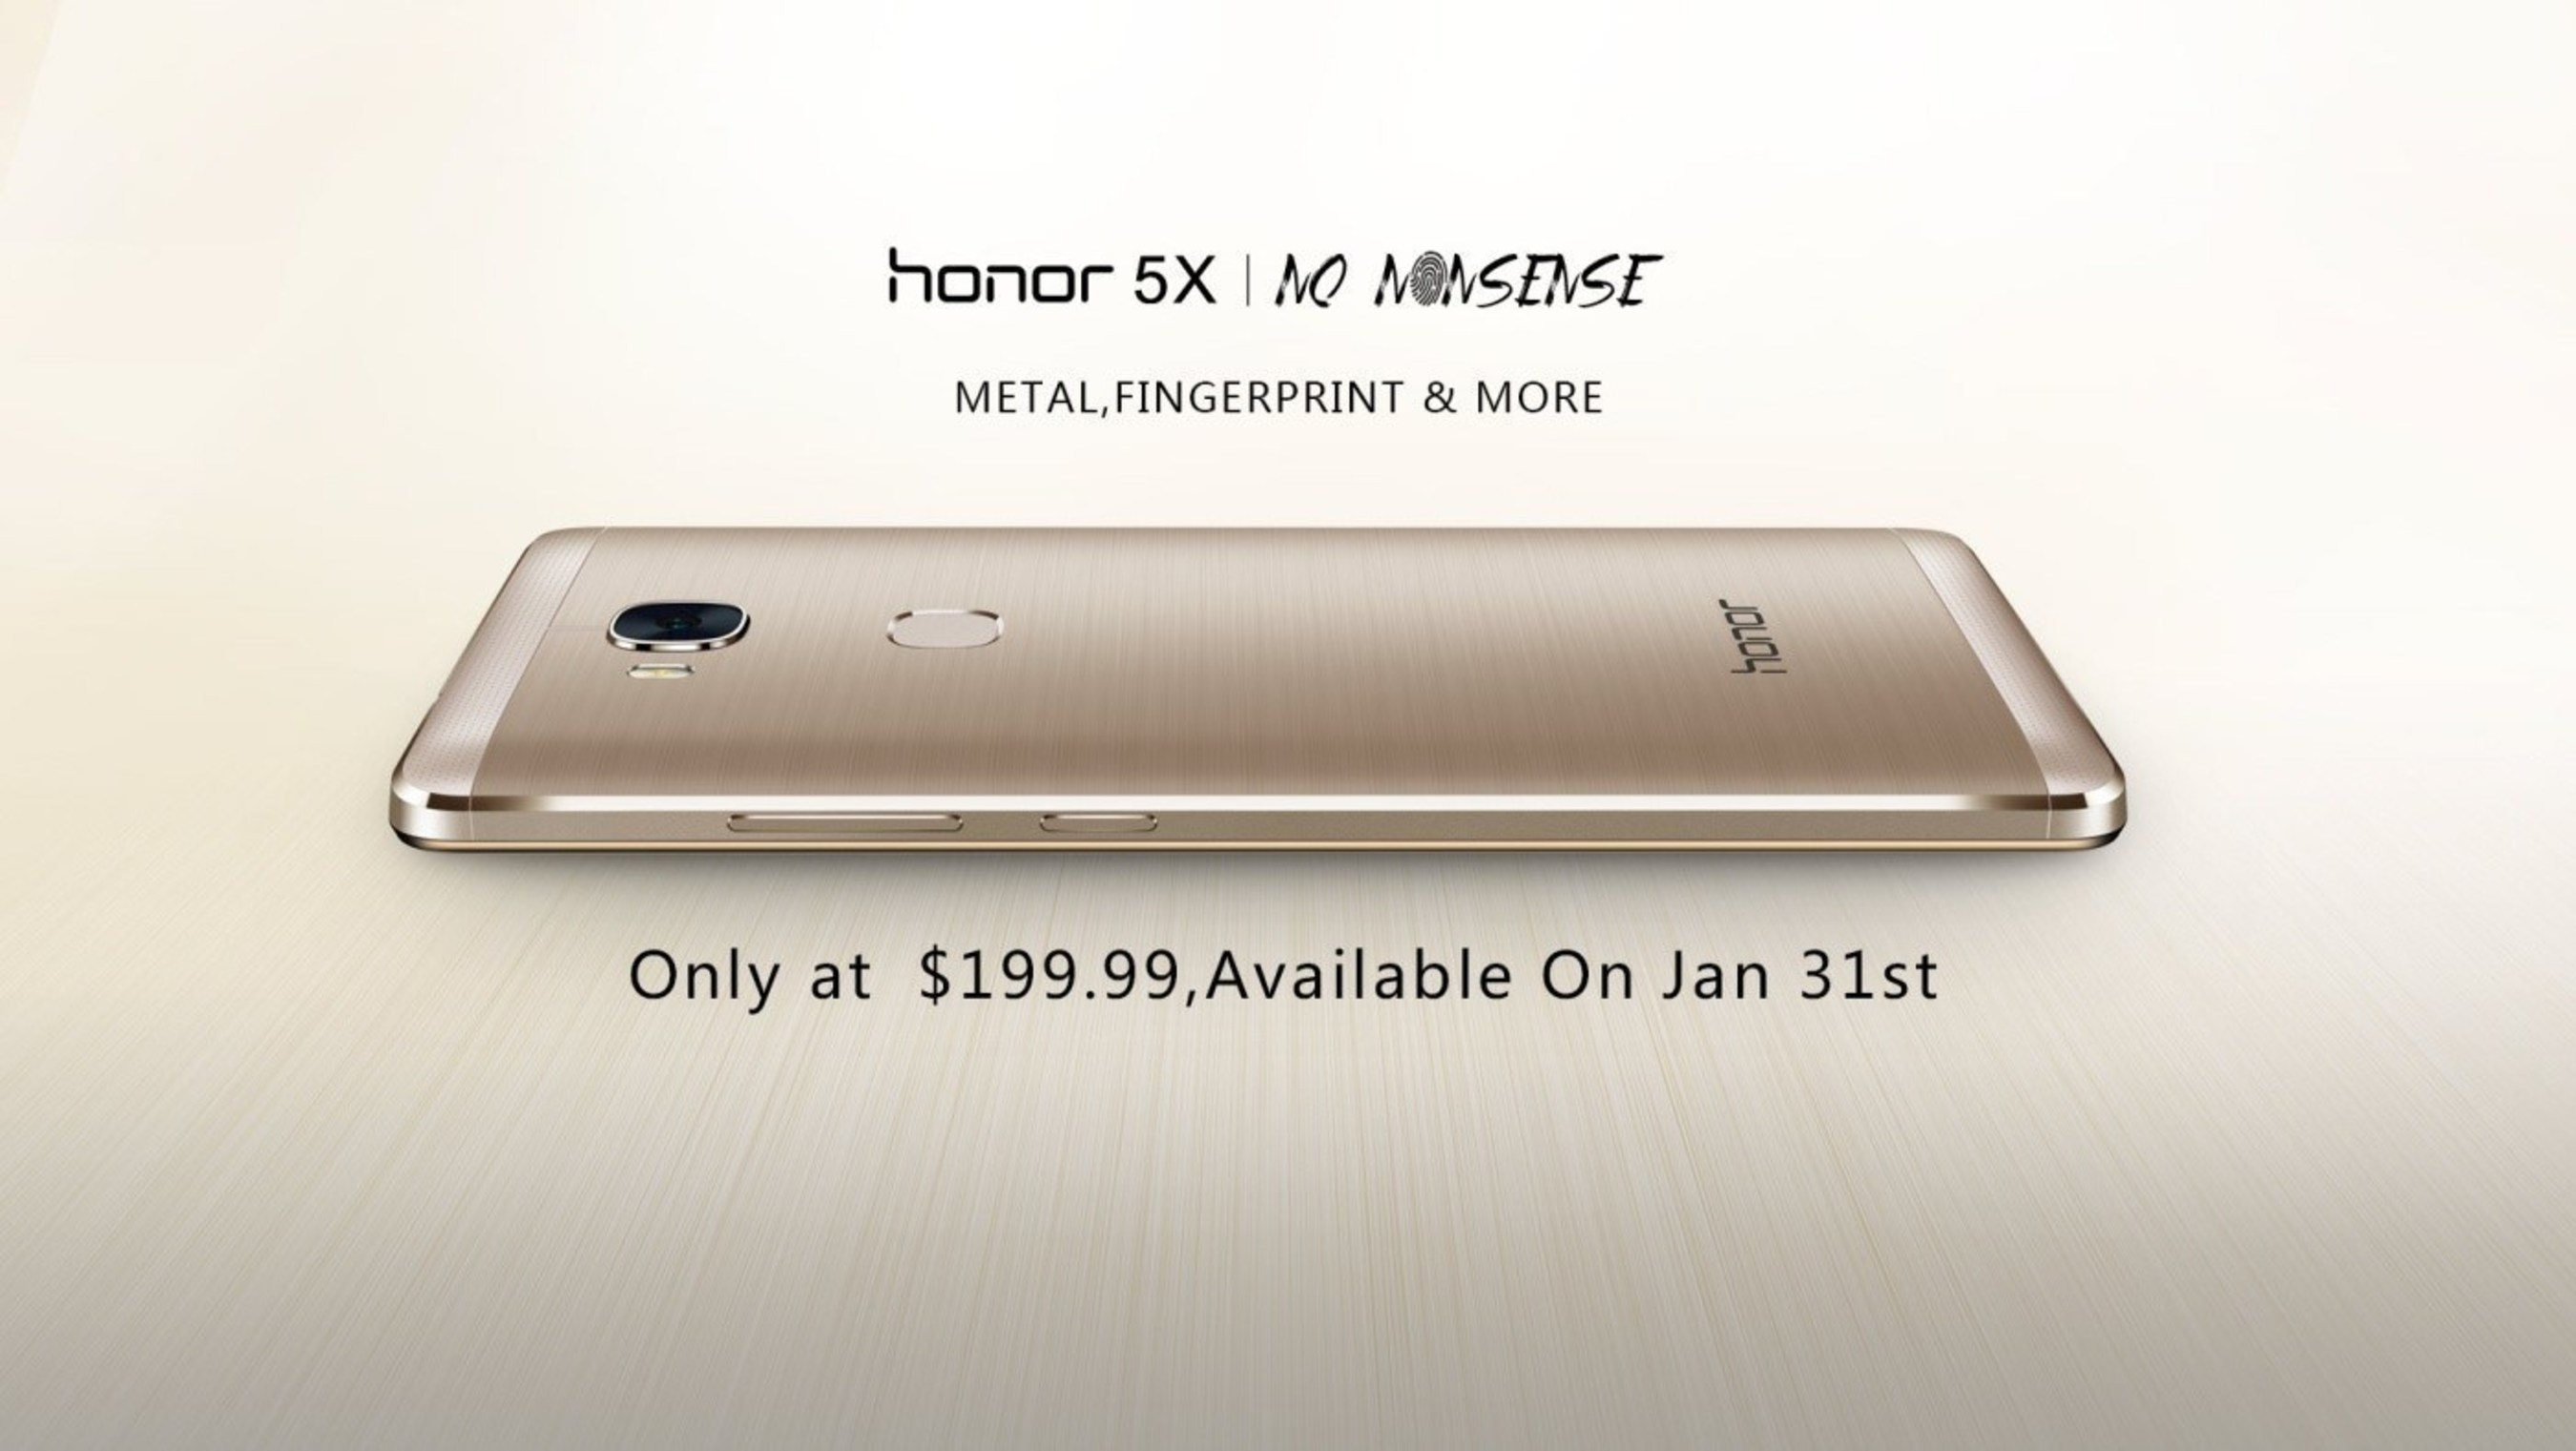 Priced at $199 USD, feature-rich honor 5X offers all-metal design and advanced fingerprint scanner